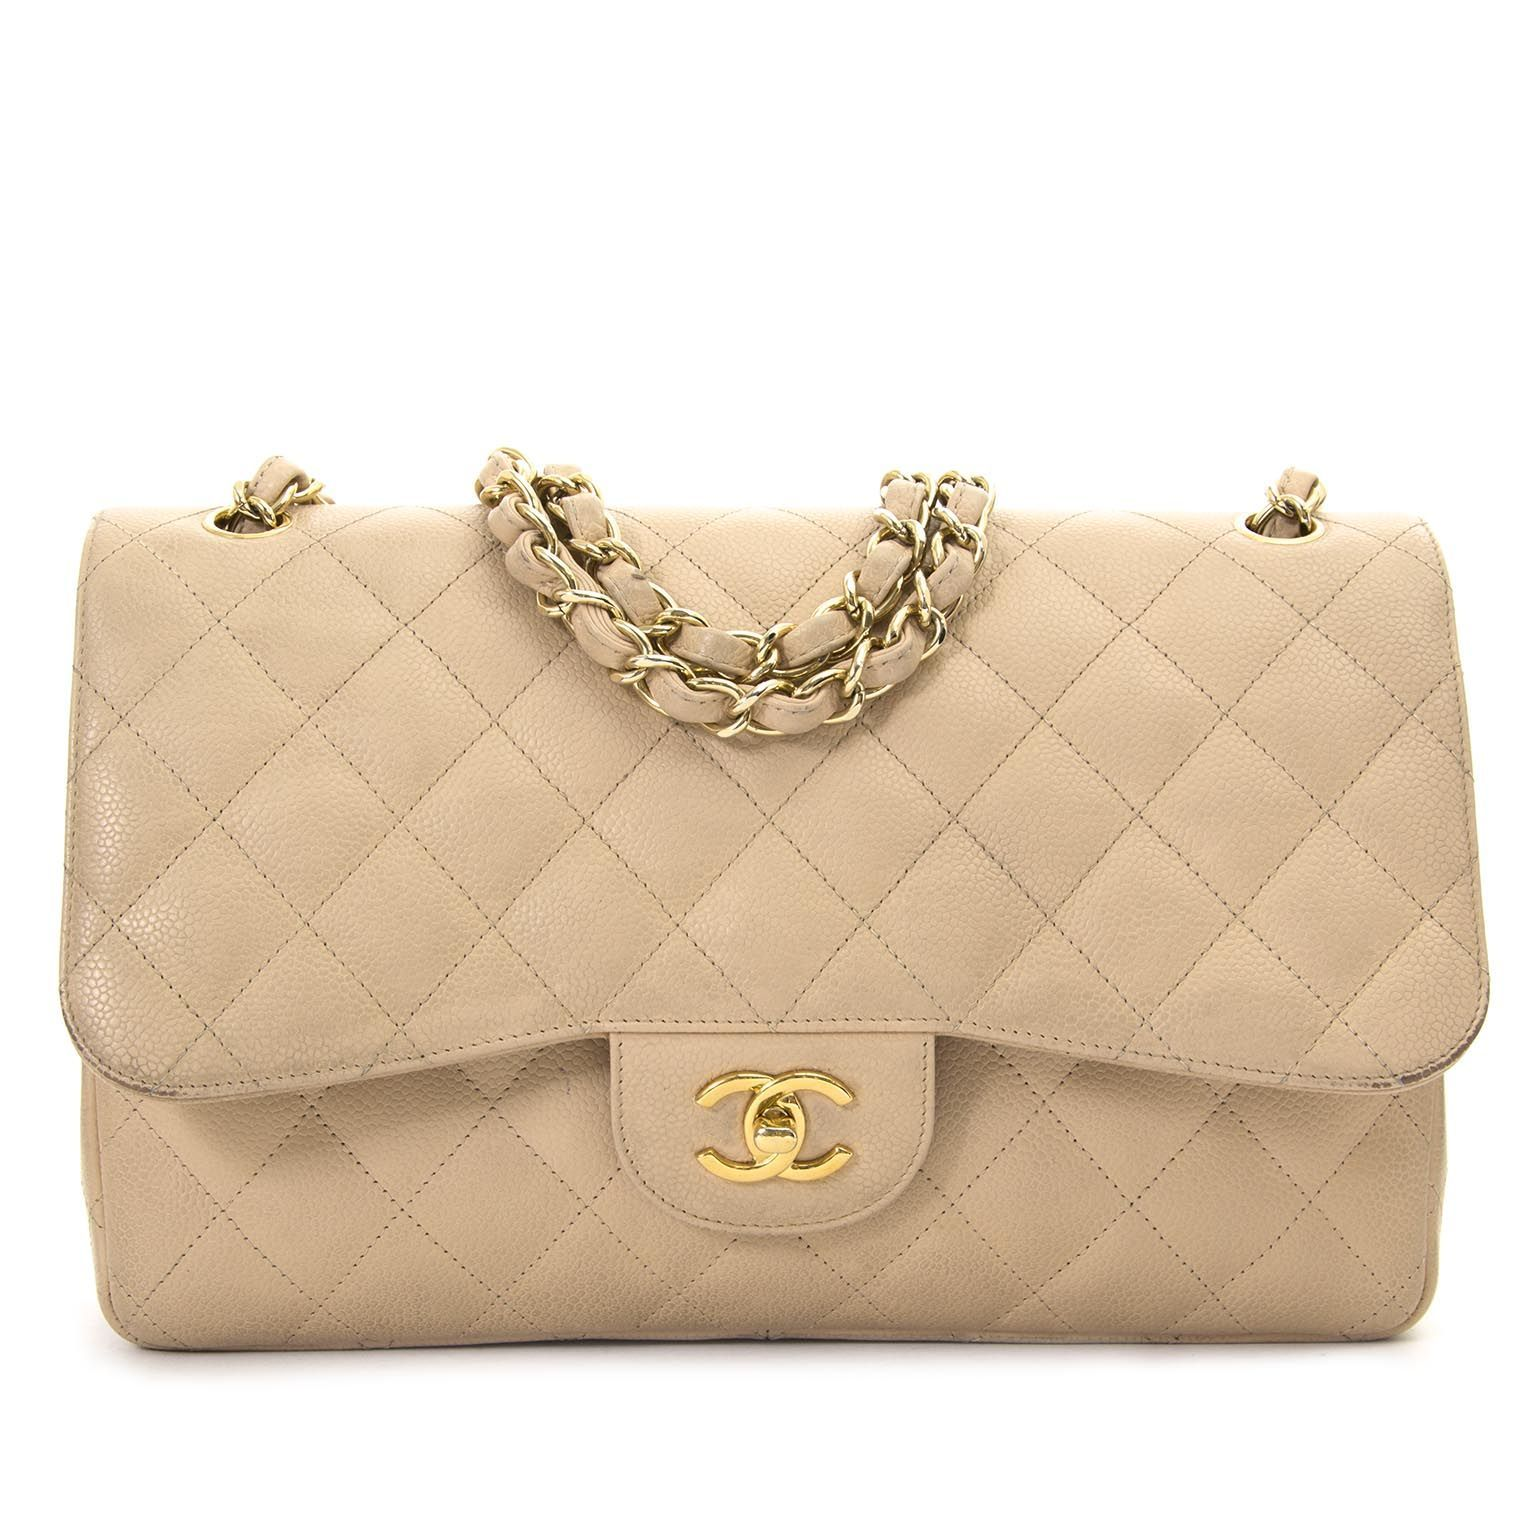 856d9422 Chanel Jumbo Beige Double Classic Flap Bag Caviar GHW now for sale ...